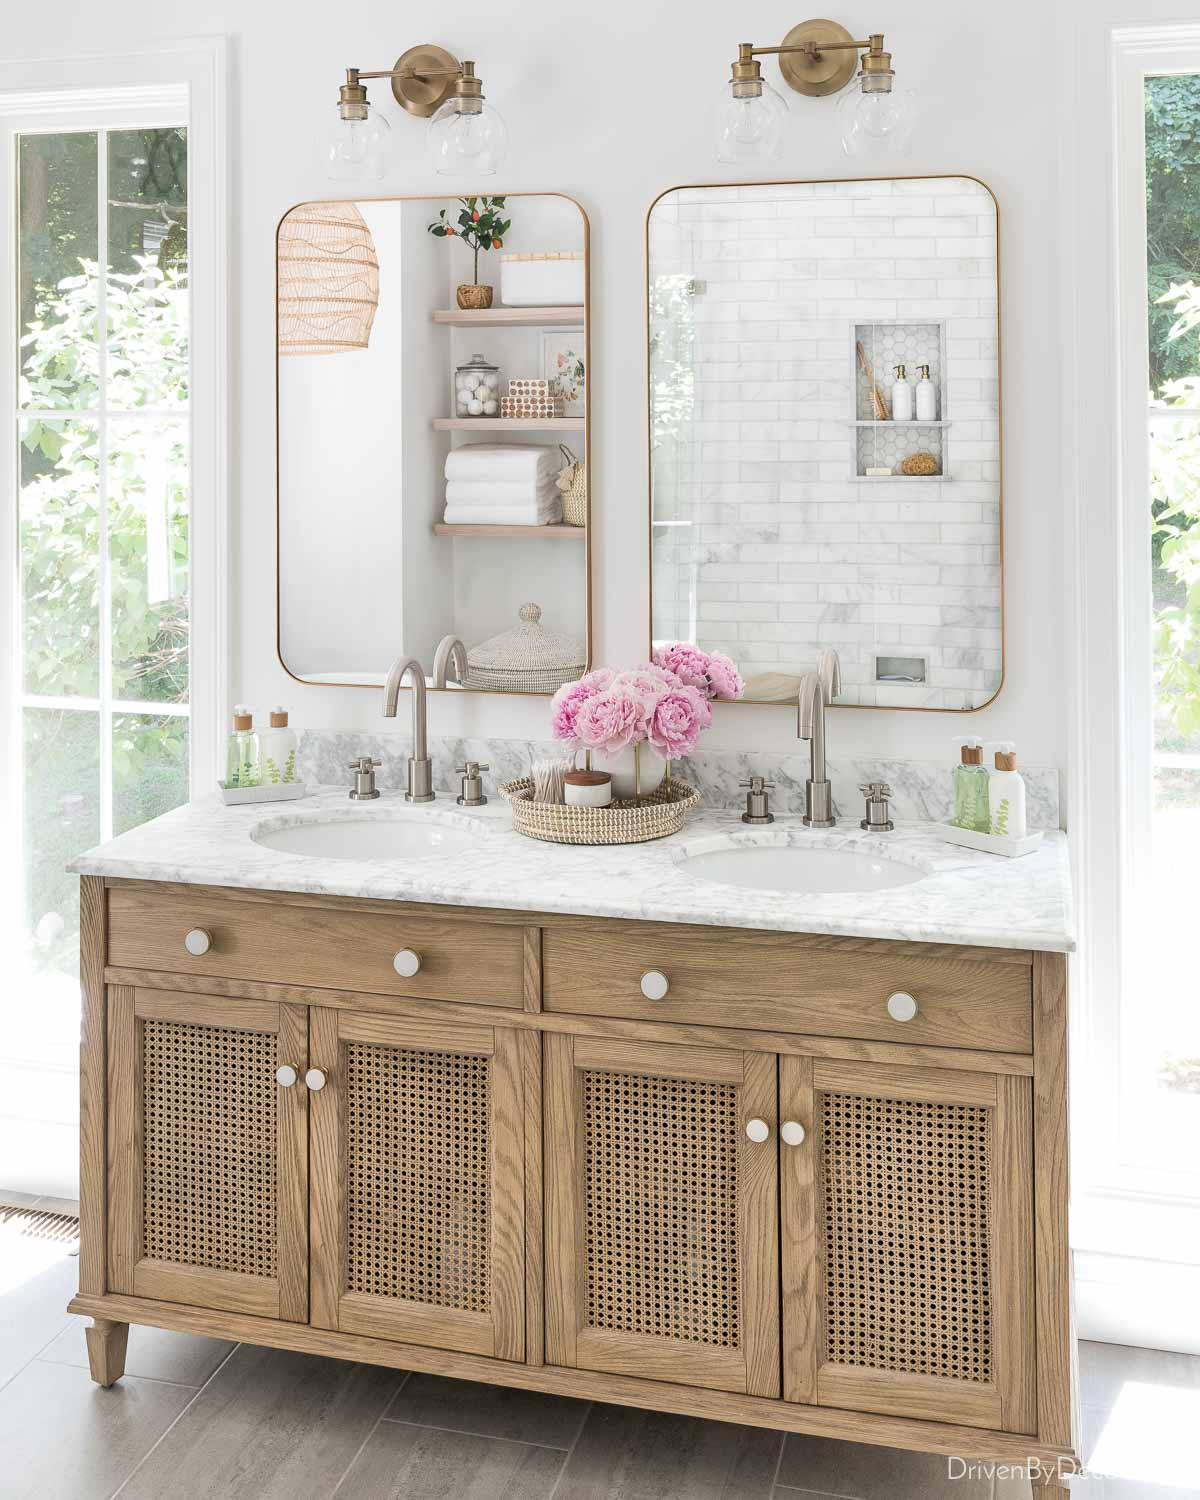 These bathroom cabinet knobs upgraded the look of our vanity!